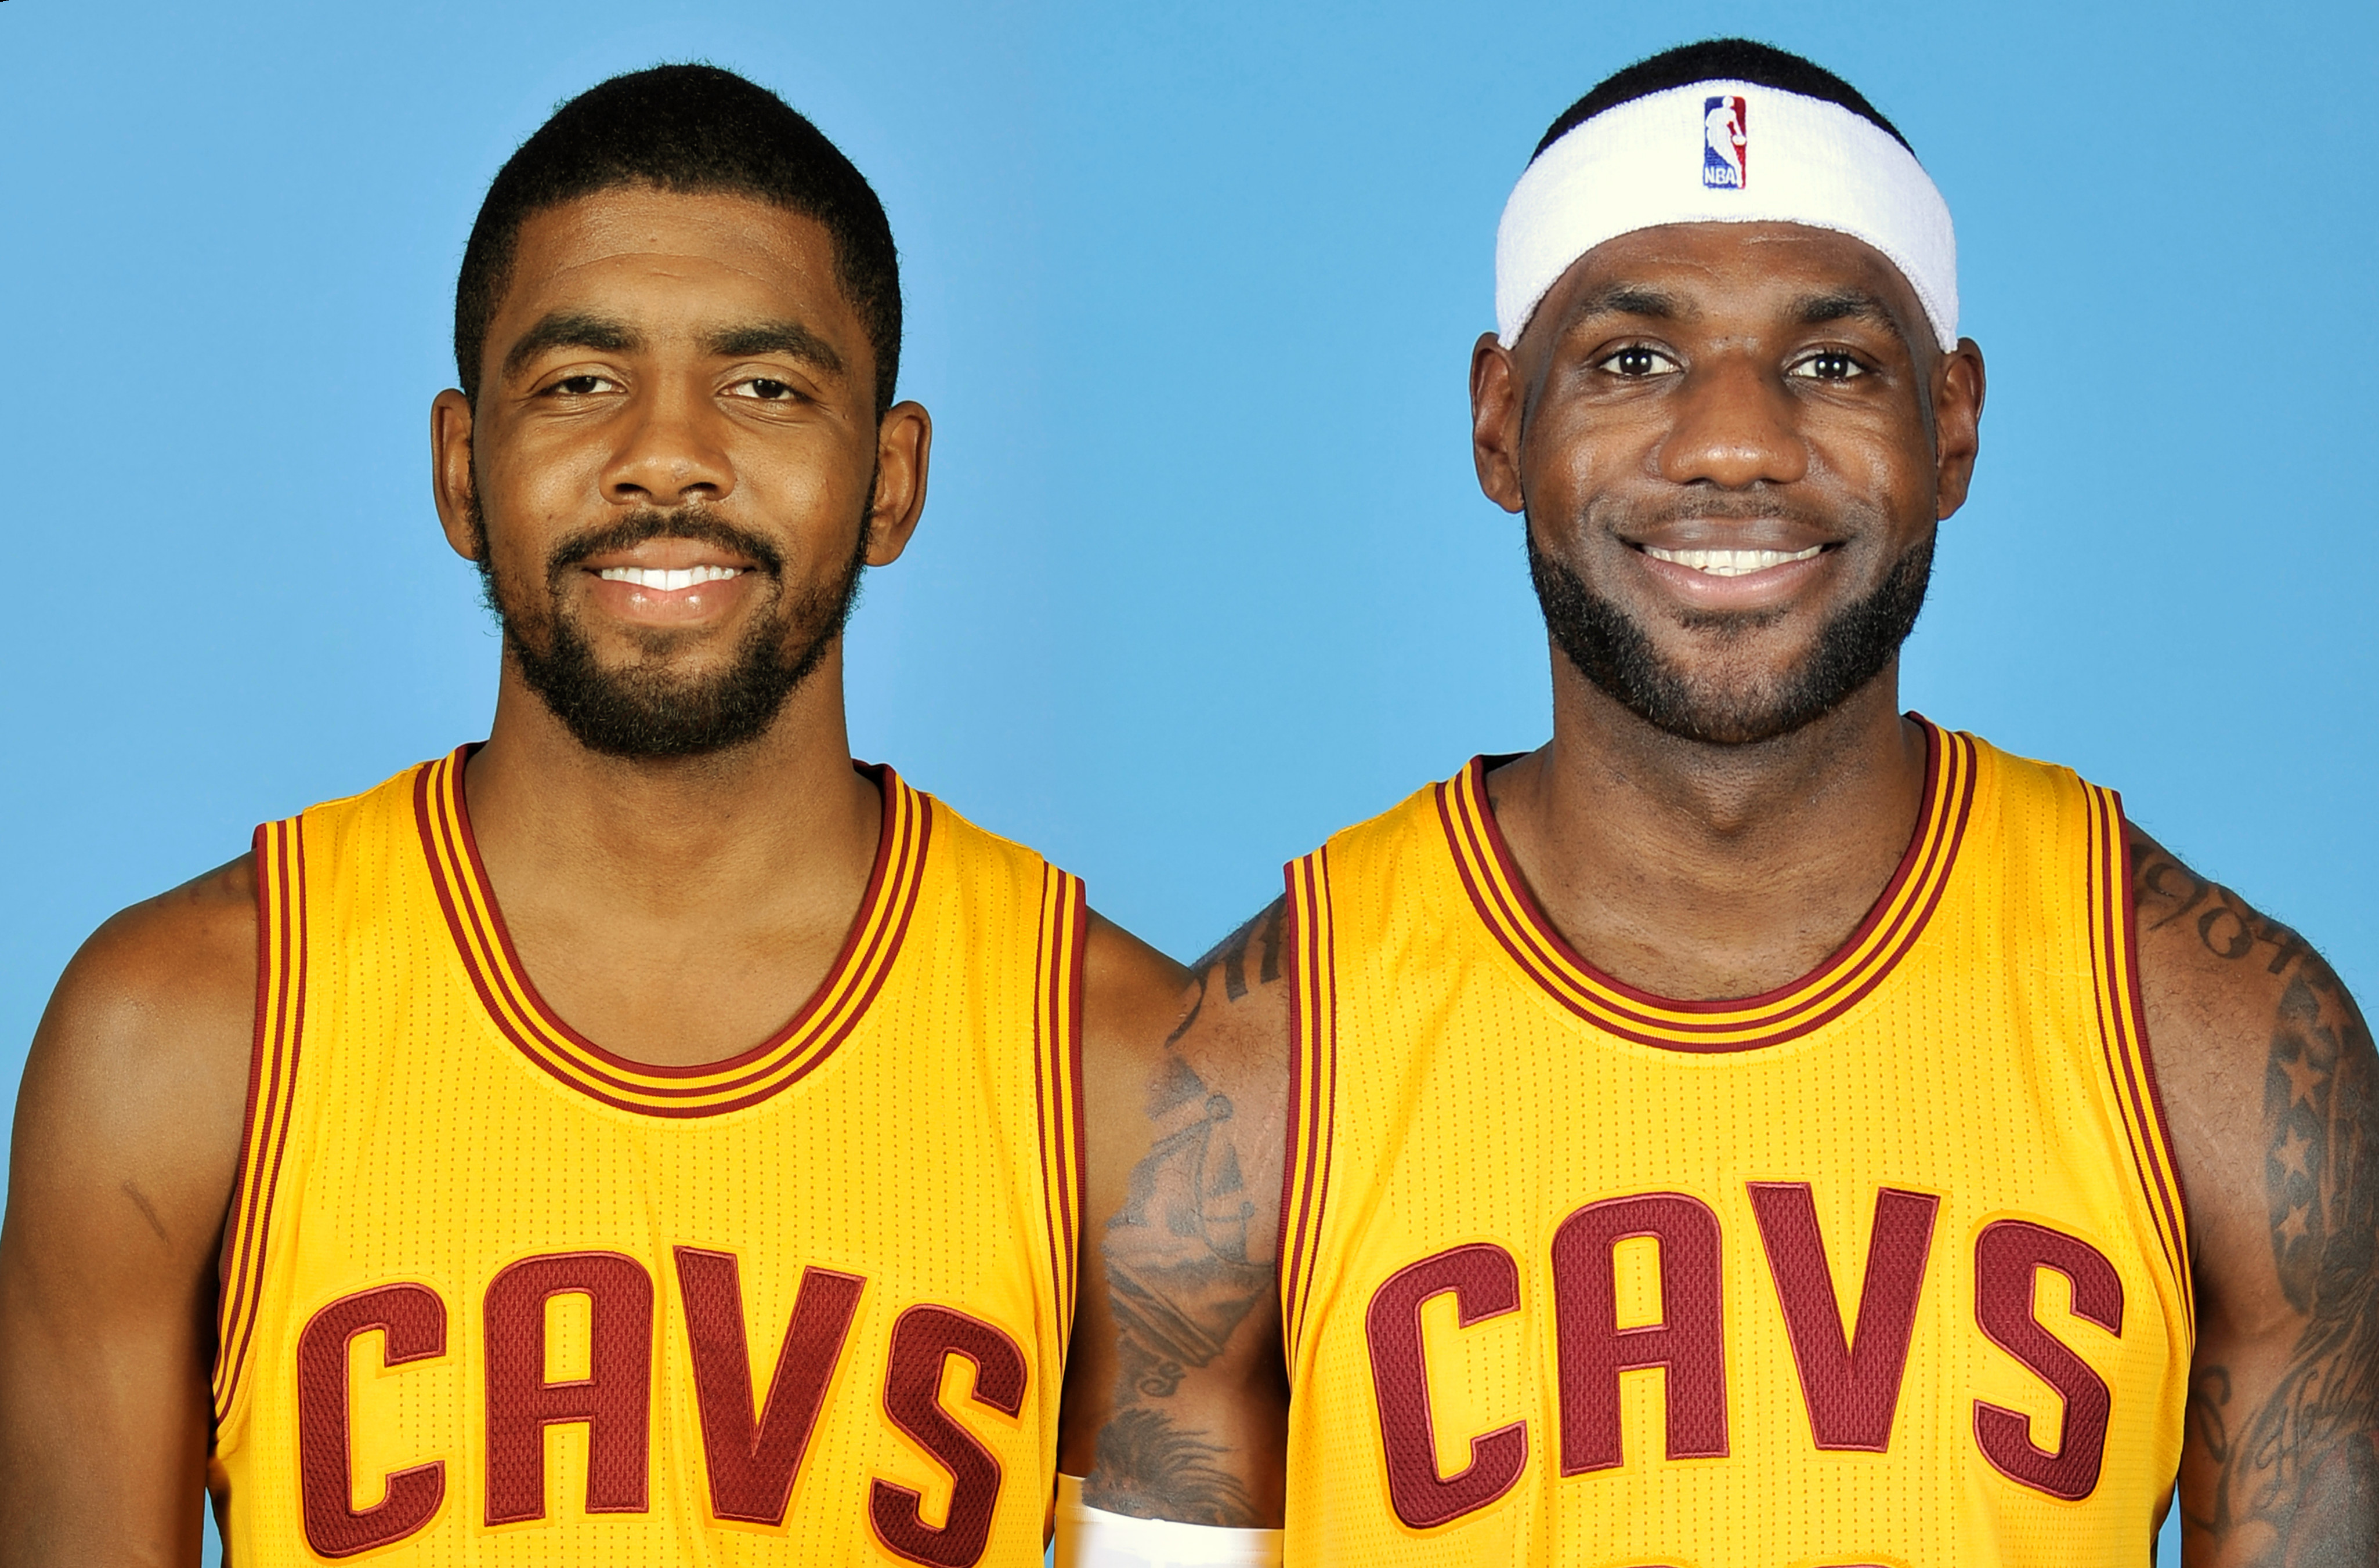 Lebron-james-and-kyrie-irving